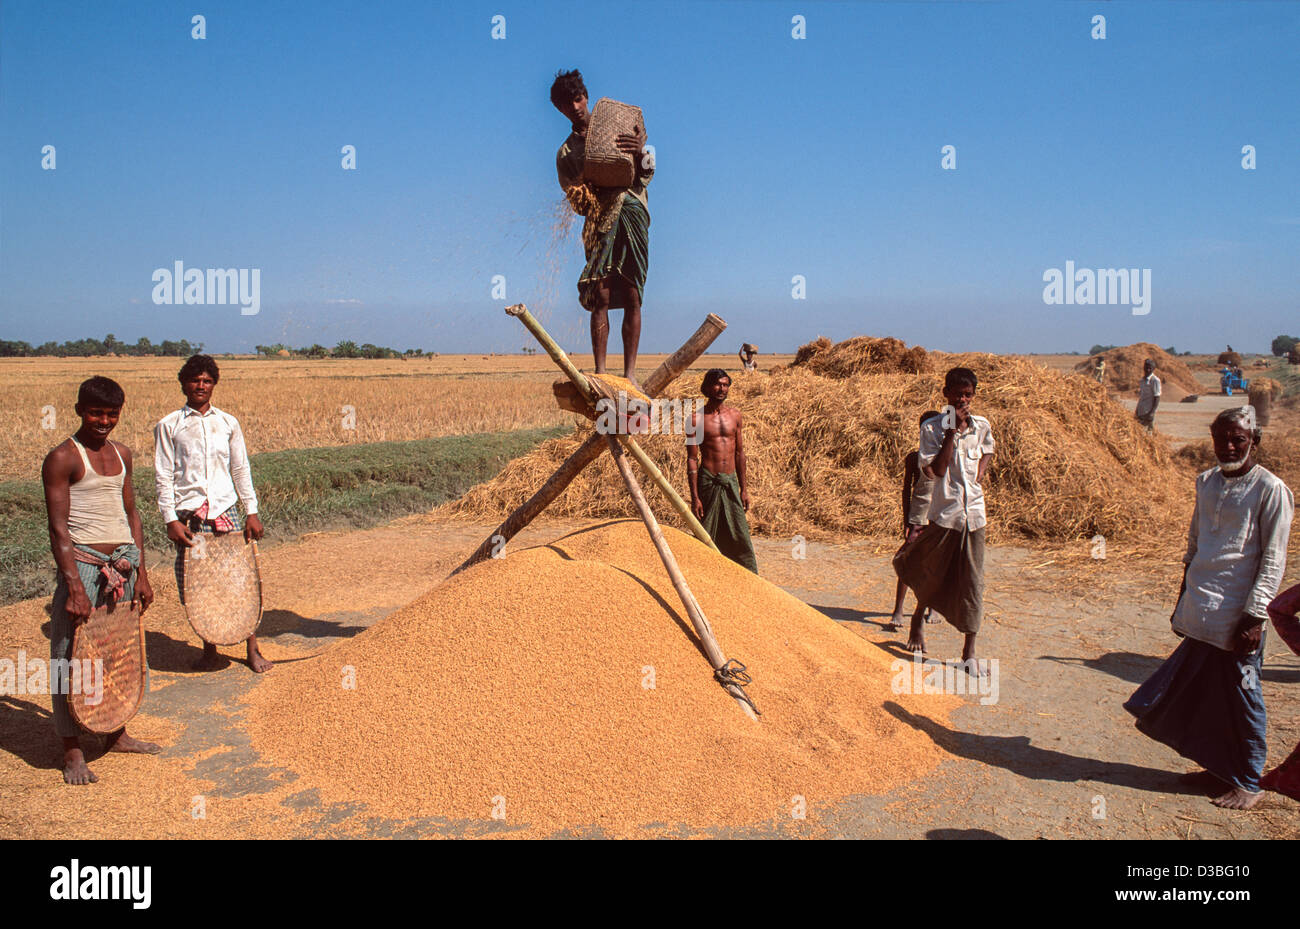 Standing high to catch the breeze to separate the rice from the husks. Sandwip Isle, Bay of Bengal, Bangladesh - Stock Image